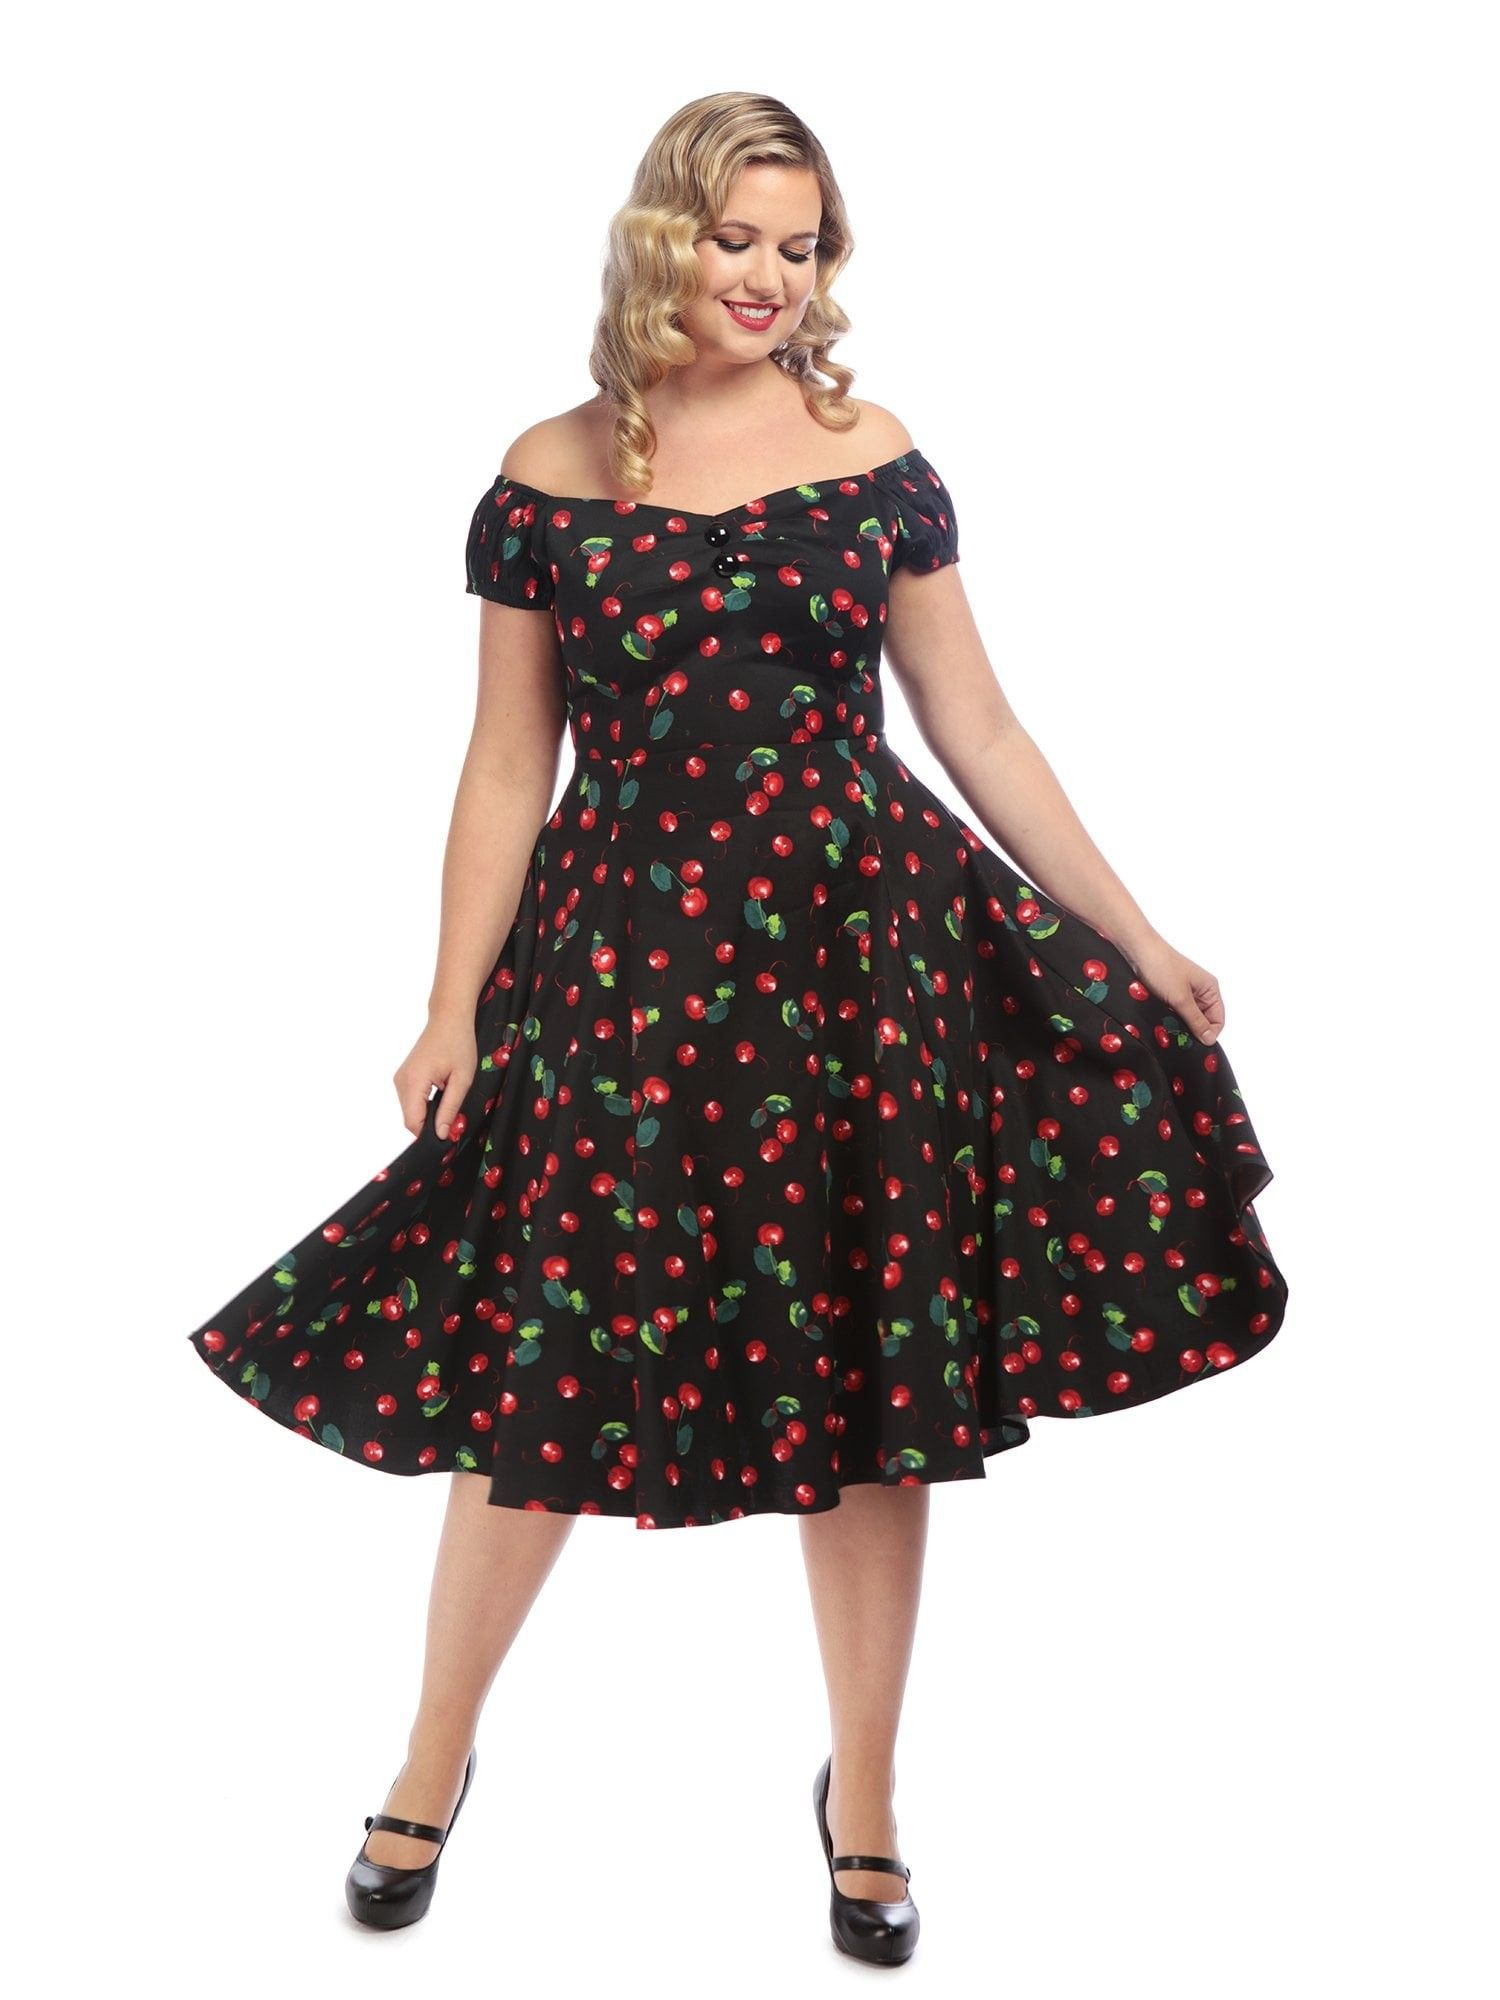 Vintage 1950s Style Black Cherry Swing Dress Black - UK6